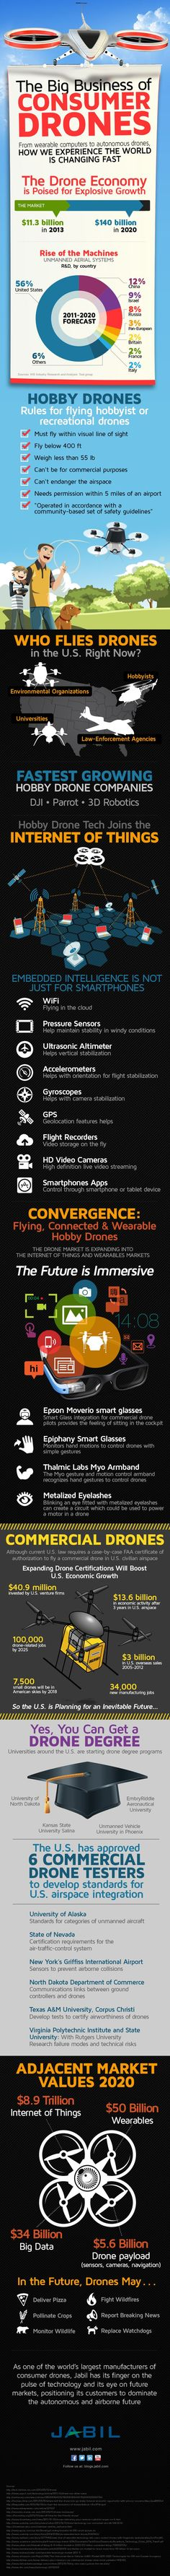 The Drone Consumer Revolution -The big business of consumer drones .. how we experience the world is changing fast. [Future Drones: http://futuristicnews.com/tag/drone/ Drones for Sale: http://futuristicshop.com/tag/drone/] #DroneWars #Drones4Life